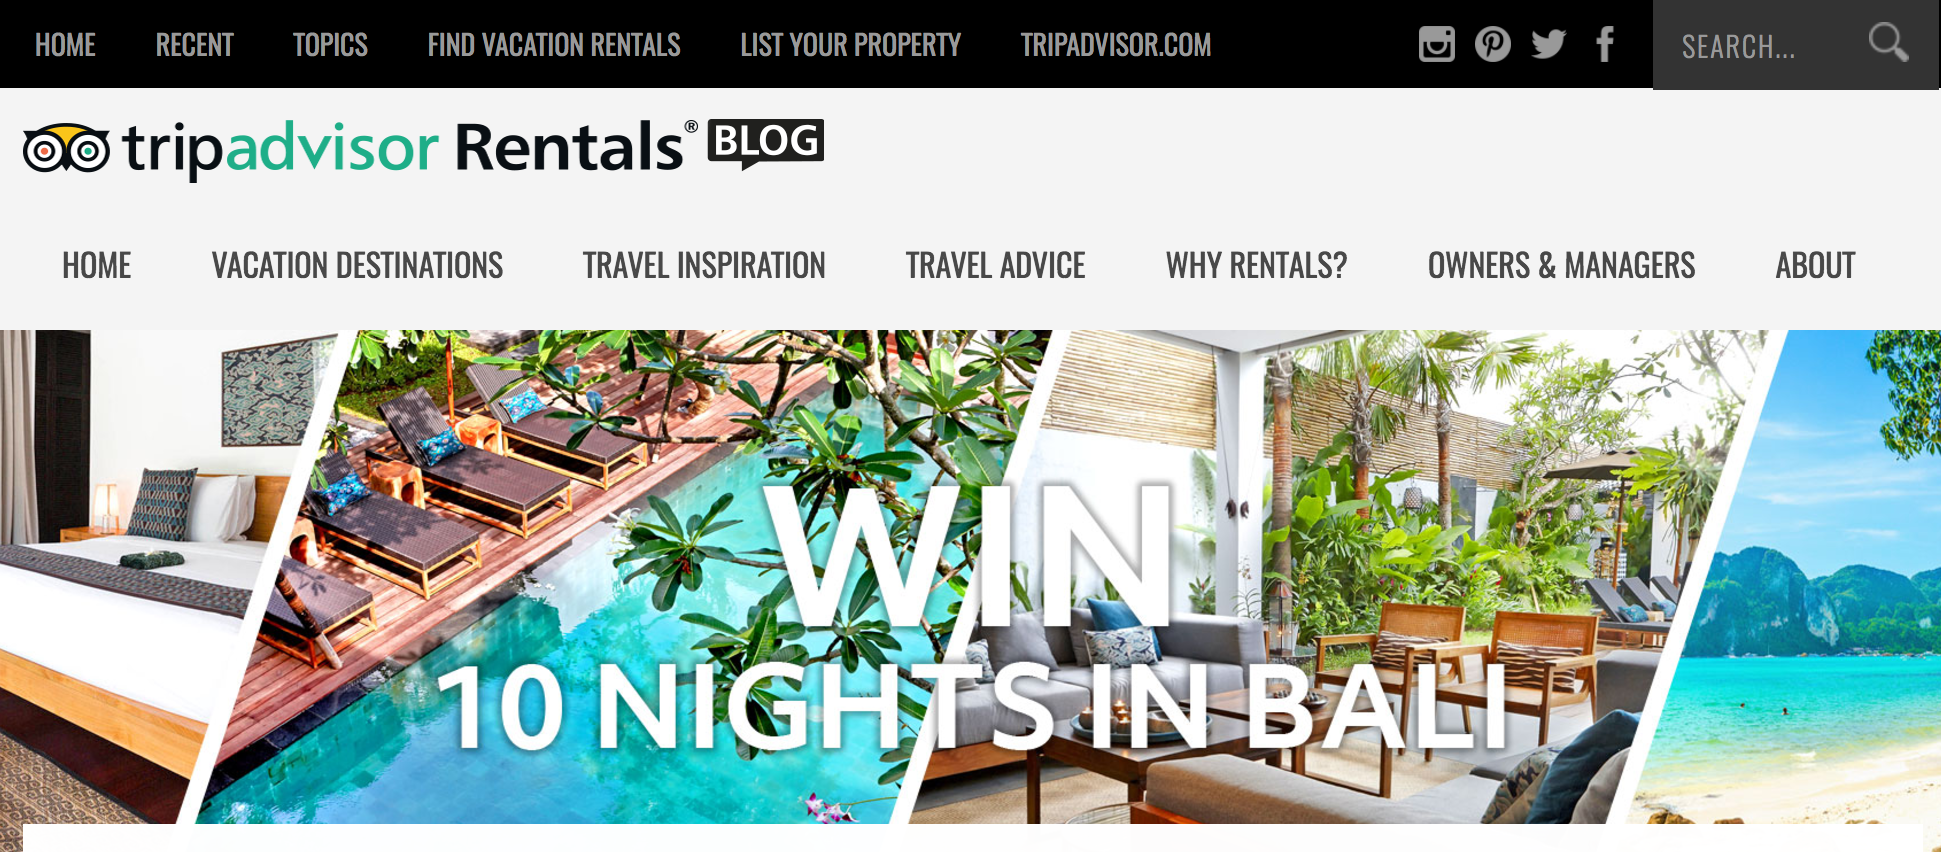 Trip Advisor 10 Nights in Bali Sweepstakes